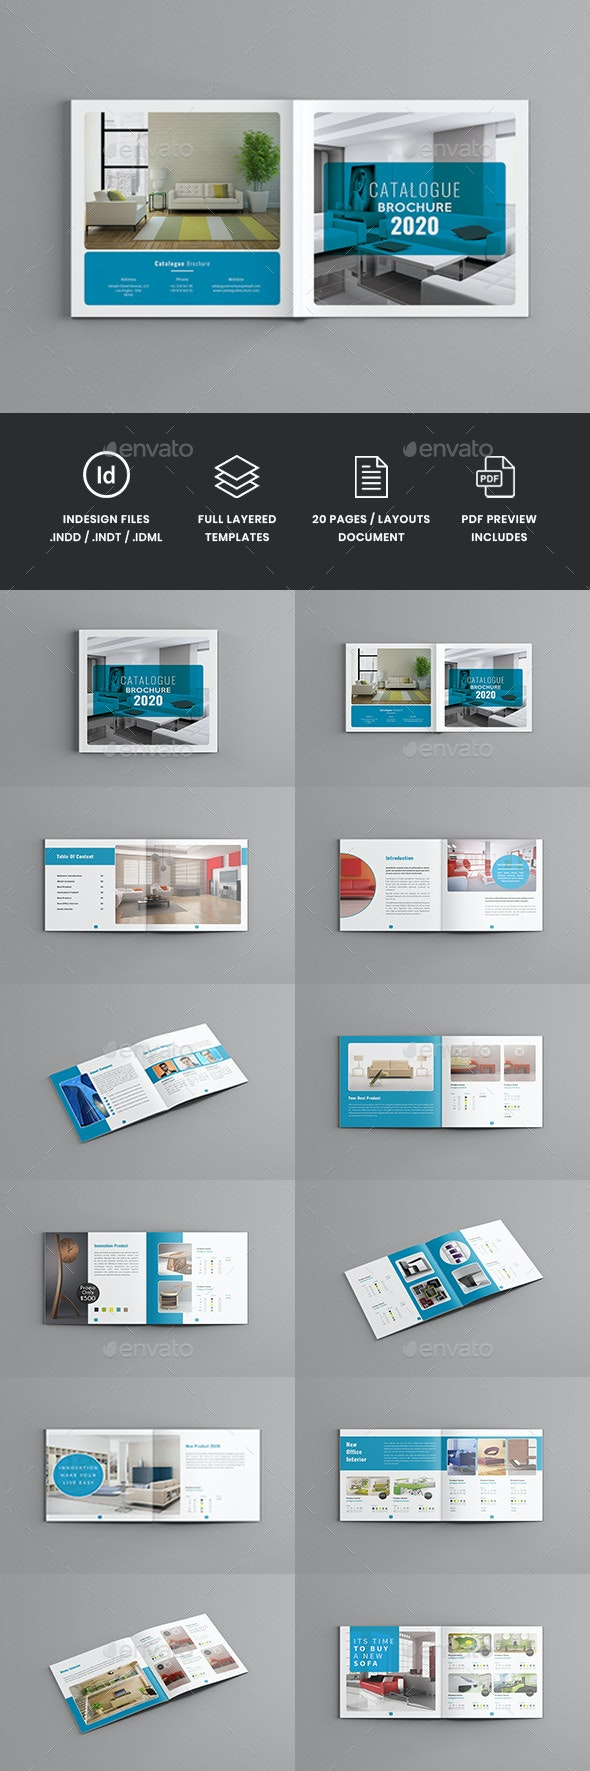 Famella - Square Minimal Catalogue Brochure Template - Corporate Brochures